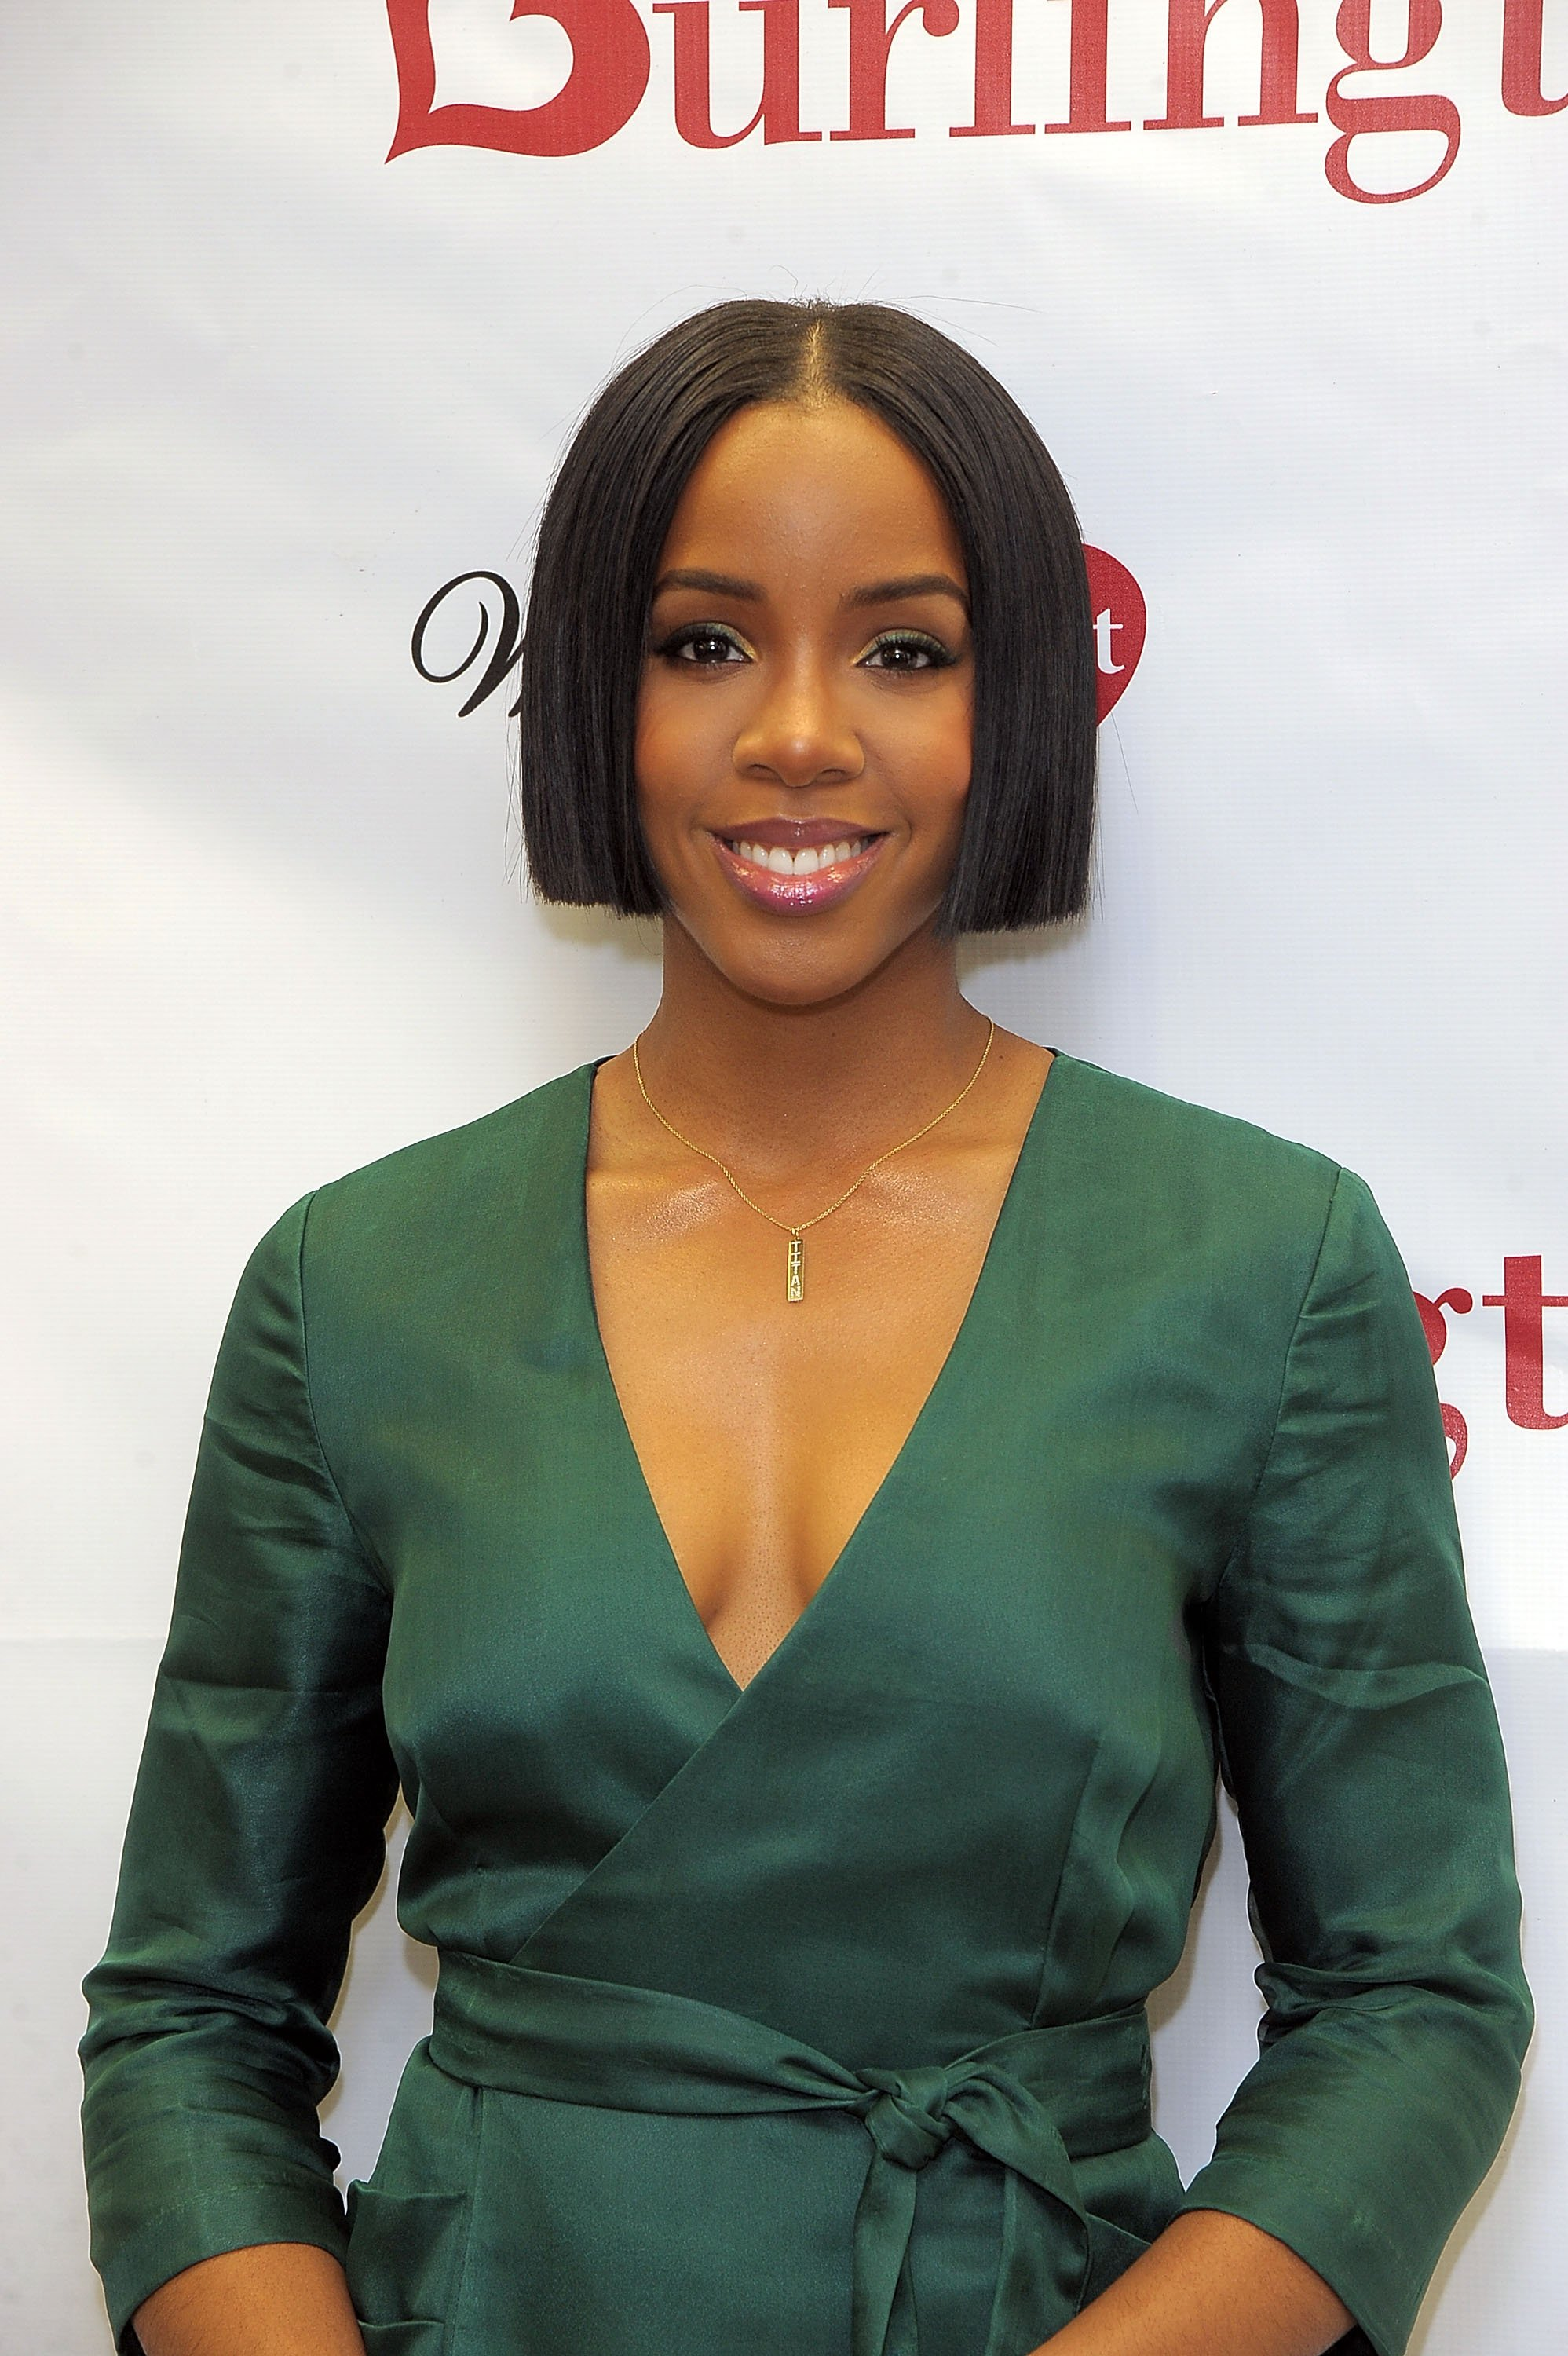 Kelly Rowland at Burlington Union Square on January 31, 2017 in New York City.| Source: Getty Images